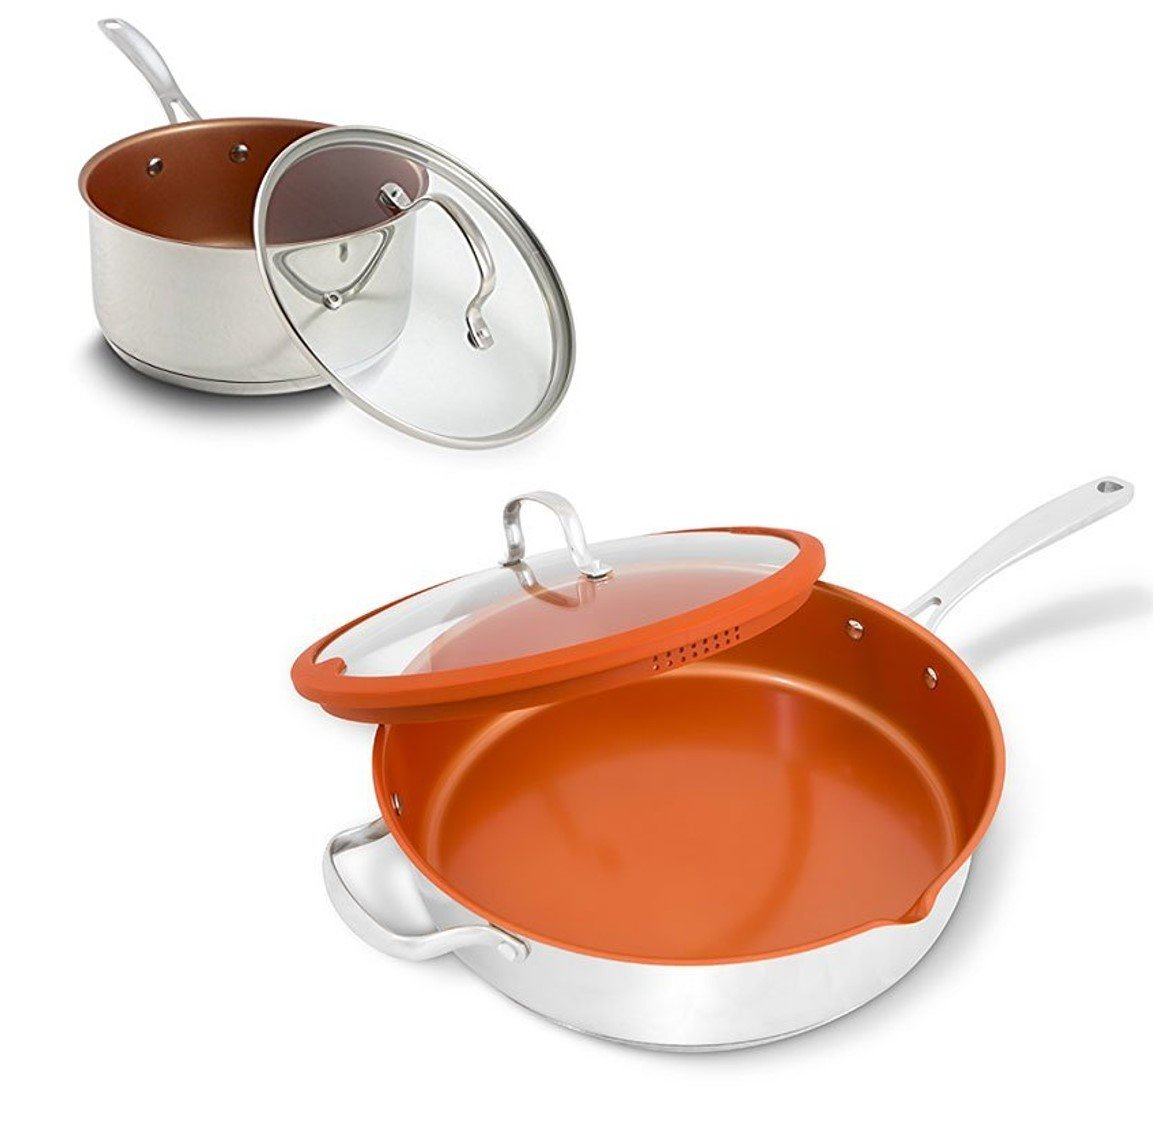 NuWave 5 Quart Everyday Pan And 1.5 Qt Saucepan, Stainless Steel, Induction Ready, Non-Stick